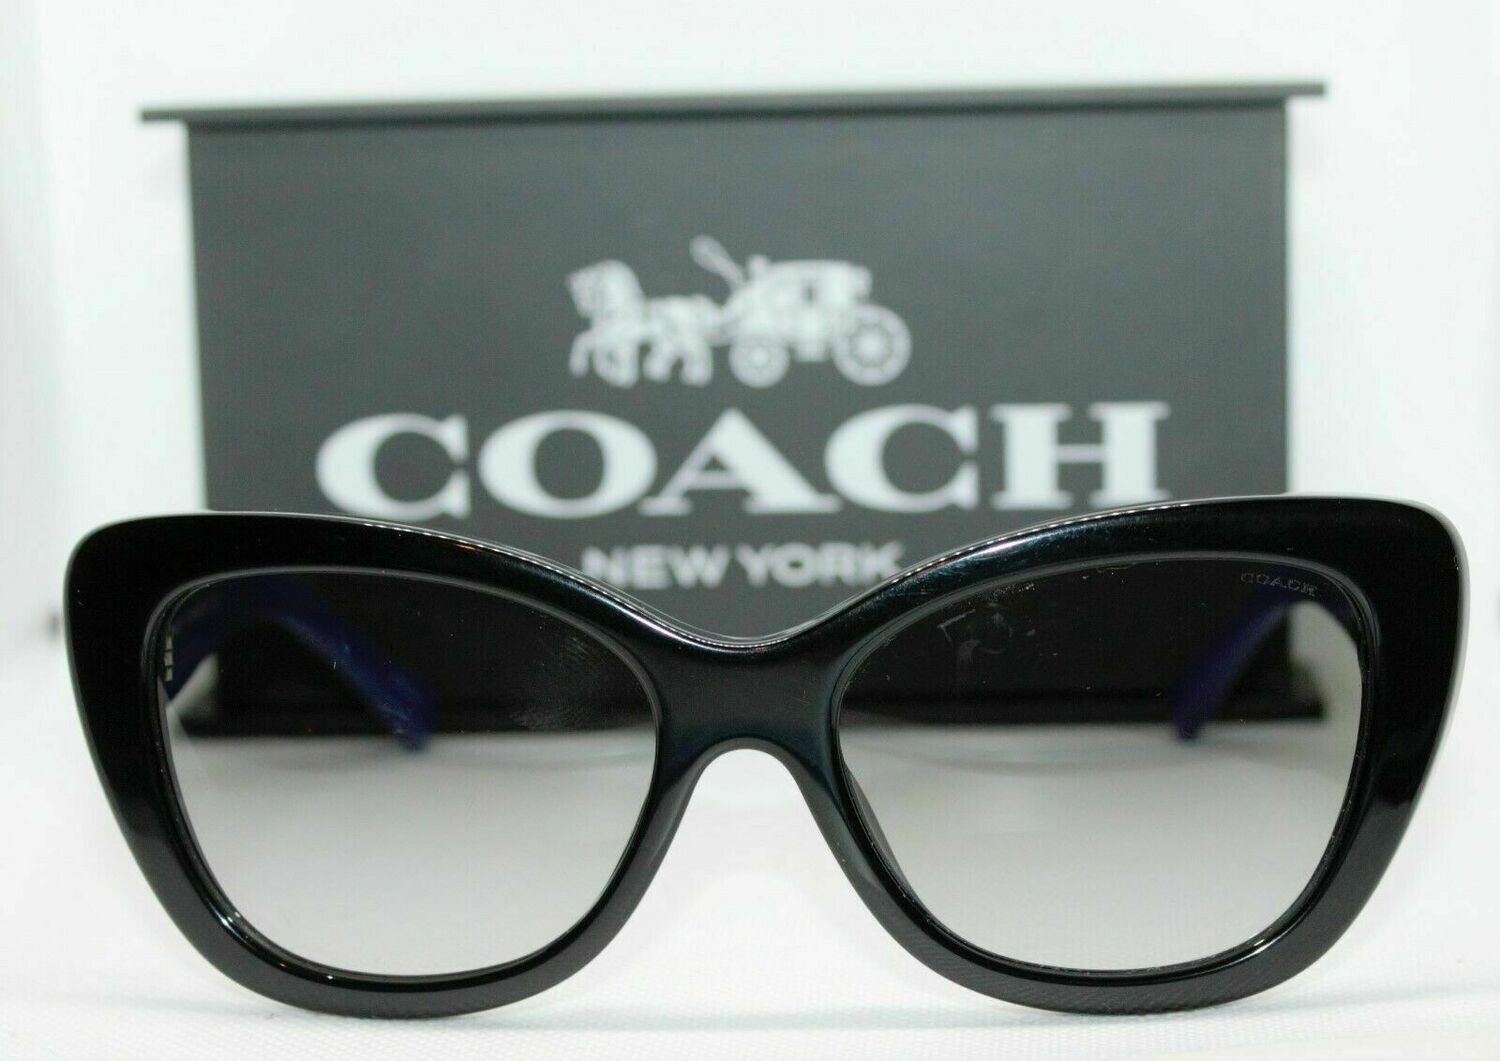 Authentic and New COACH Women's 0HC8143B Black/Blue Sunglasses Case included